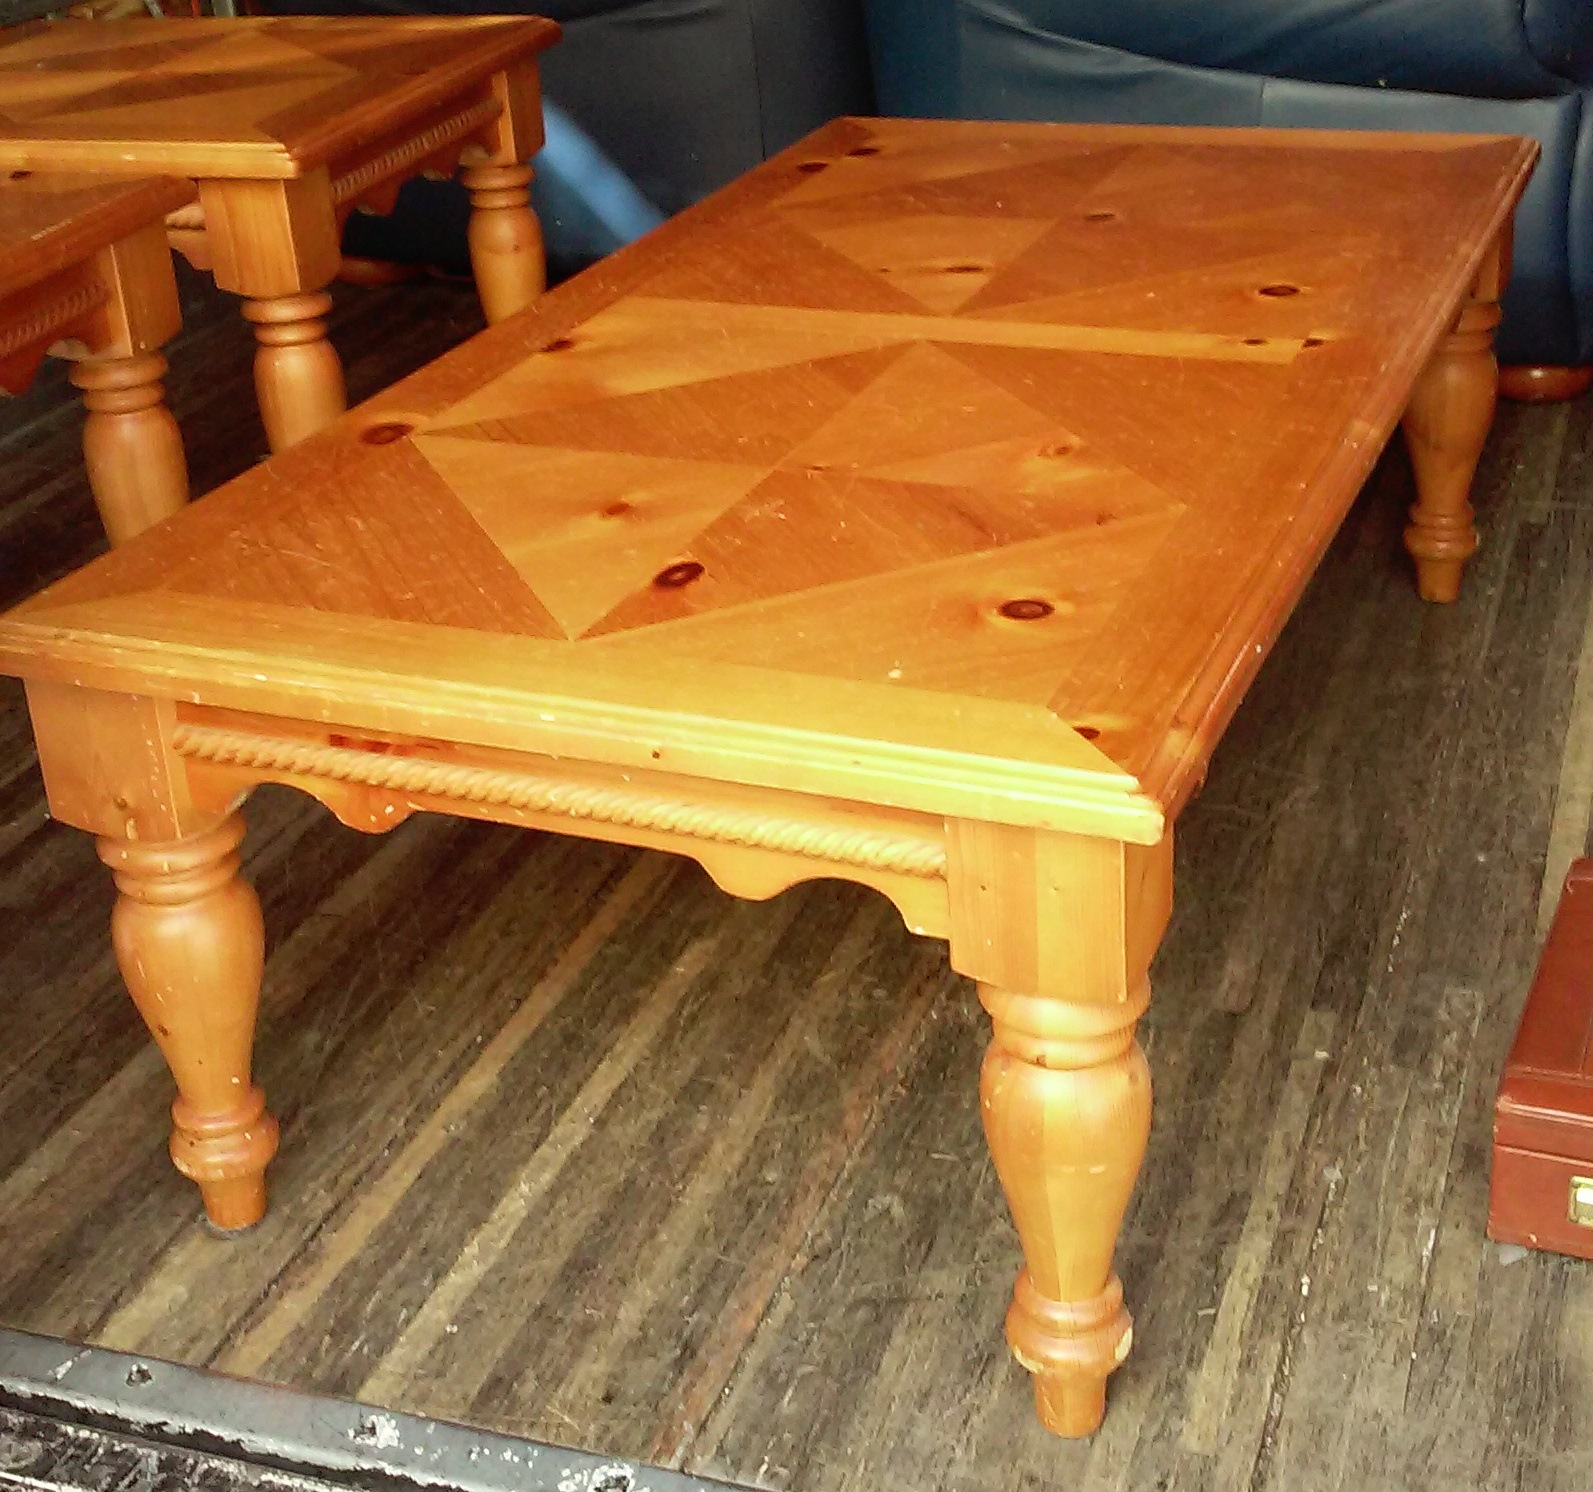 Uhuru Furniture Collectibles Sold Bargain Buy 3167 4 1 2 39 Long Knotty Pine Coffee Table